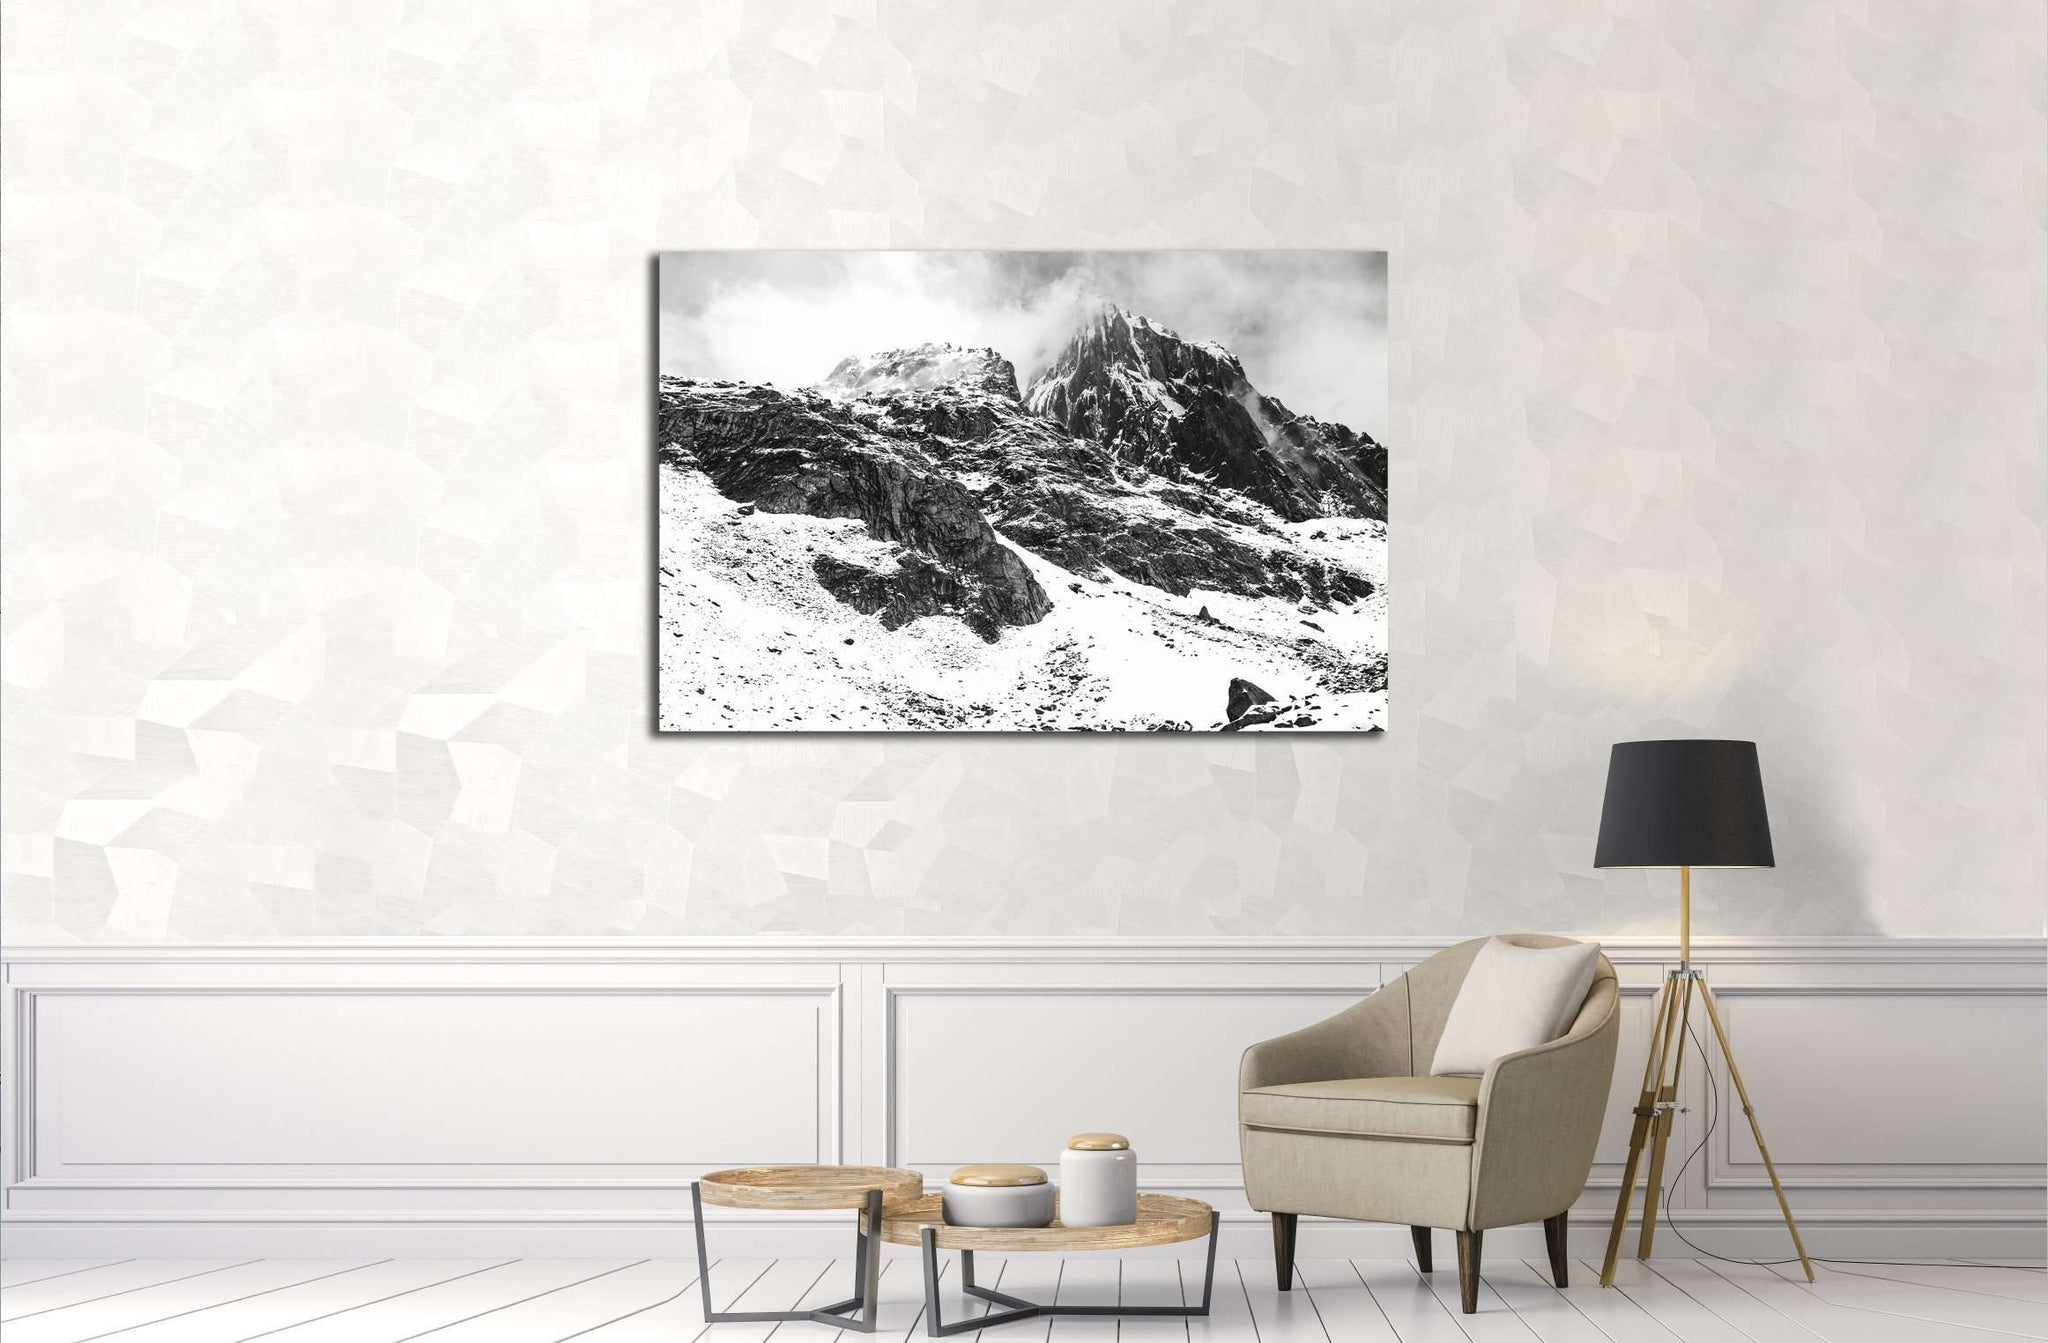 Black and White Himalayan scene from Pakistan №3117 Ready to Hang Canvas Print